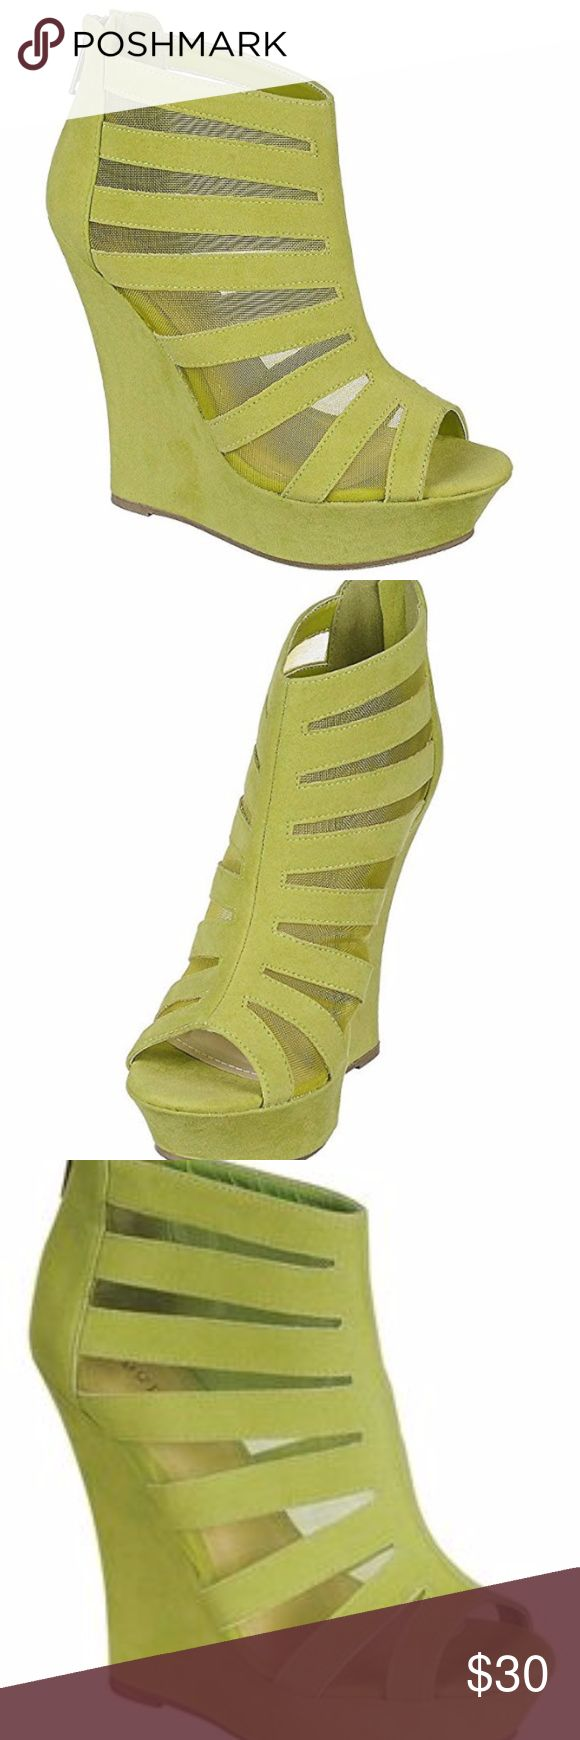 """BAMBOO Lime wedges! Sz 7 This beautiful Bamboo pink wedge features a leatherette upper, perforated design, lace up front, side cut out, stitching detail, peep toe platform wedge, lightly padded insole, and a rear zipper closer for easy on/off. Heel height: 5.25"""""""" Platform: 1.5"""""""" (approx.) Sole: Rubber Material: Leatherette (man-made)  BRAND NEW never worn! BAMBOO Shoes Wedges"""